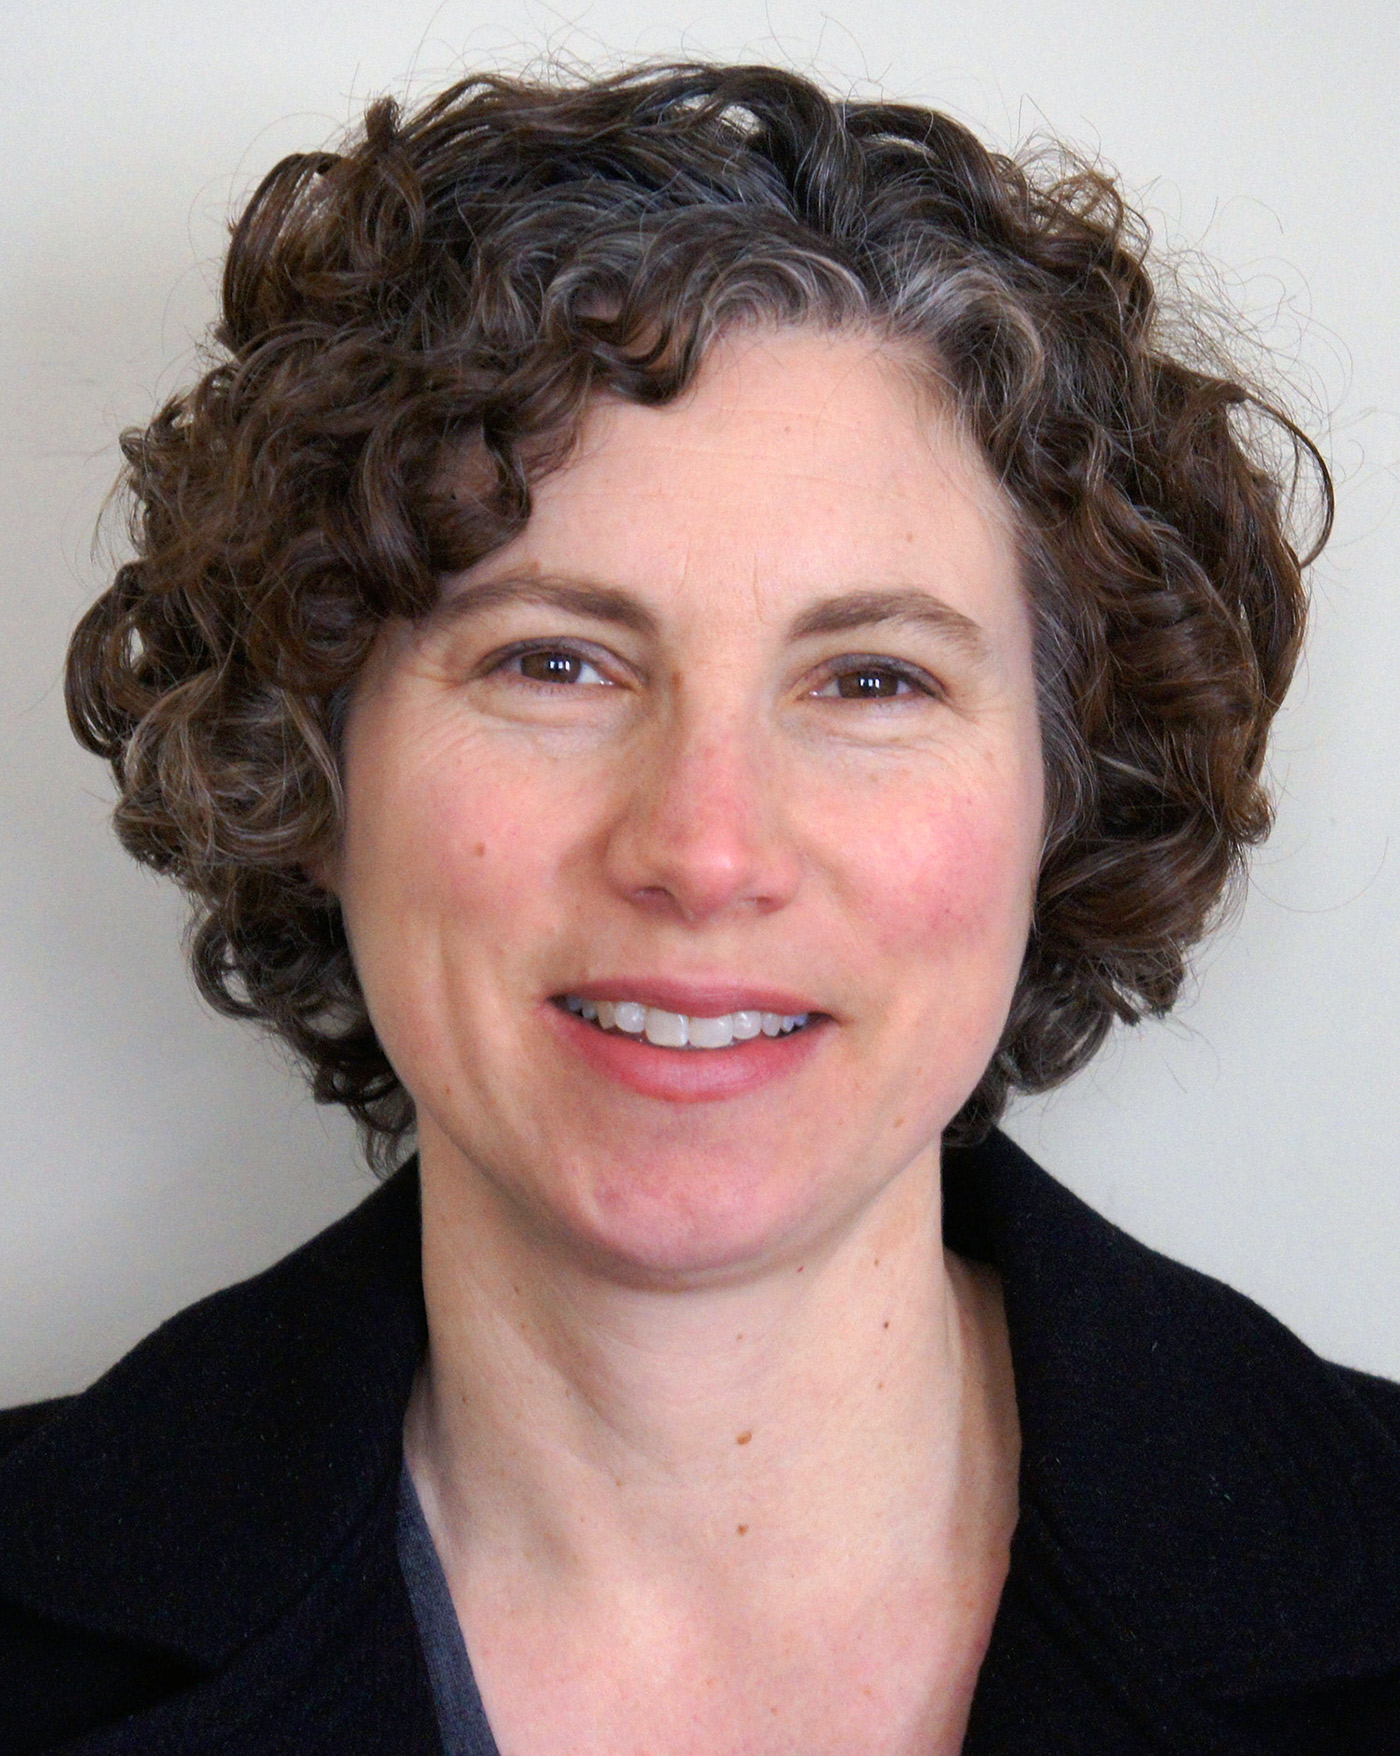 Juliette Rooney-Varga is an Associate Professor in the Environmental, Earth and Atmospheric Sciences Department and the Director of the Climate Change Initiative at UMass Lowell